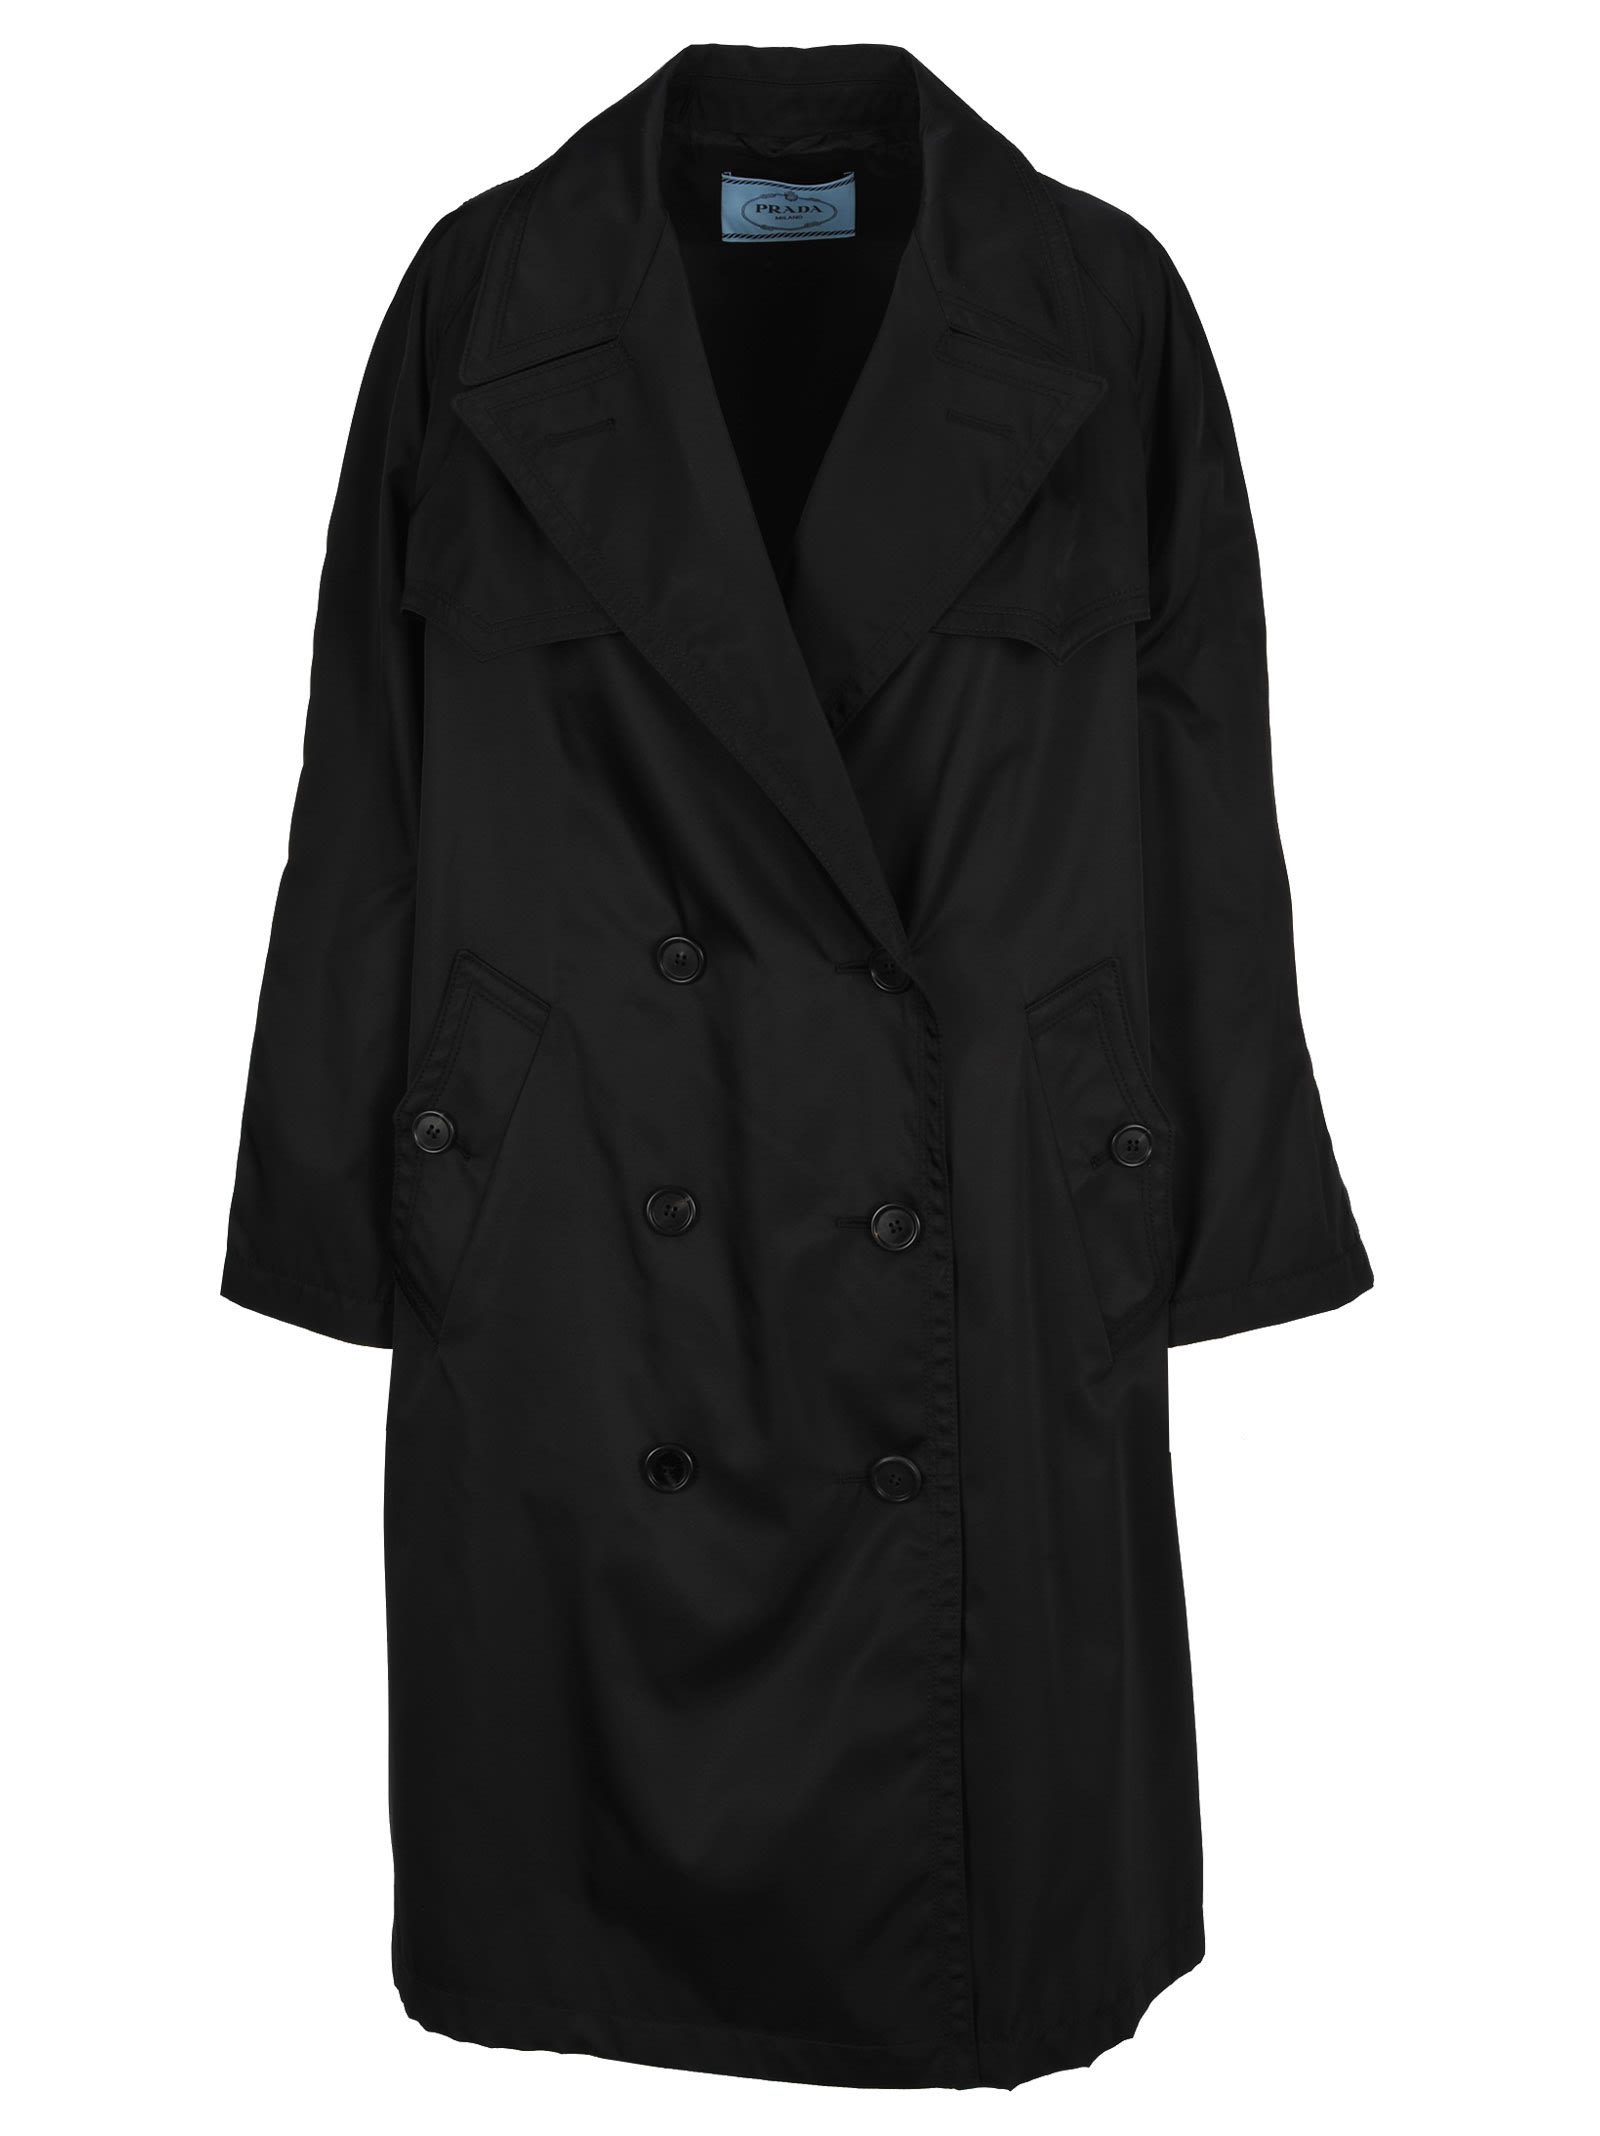 Prada Prada Double-breasted Trench